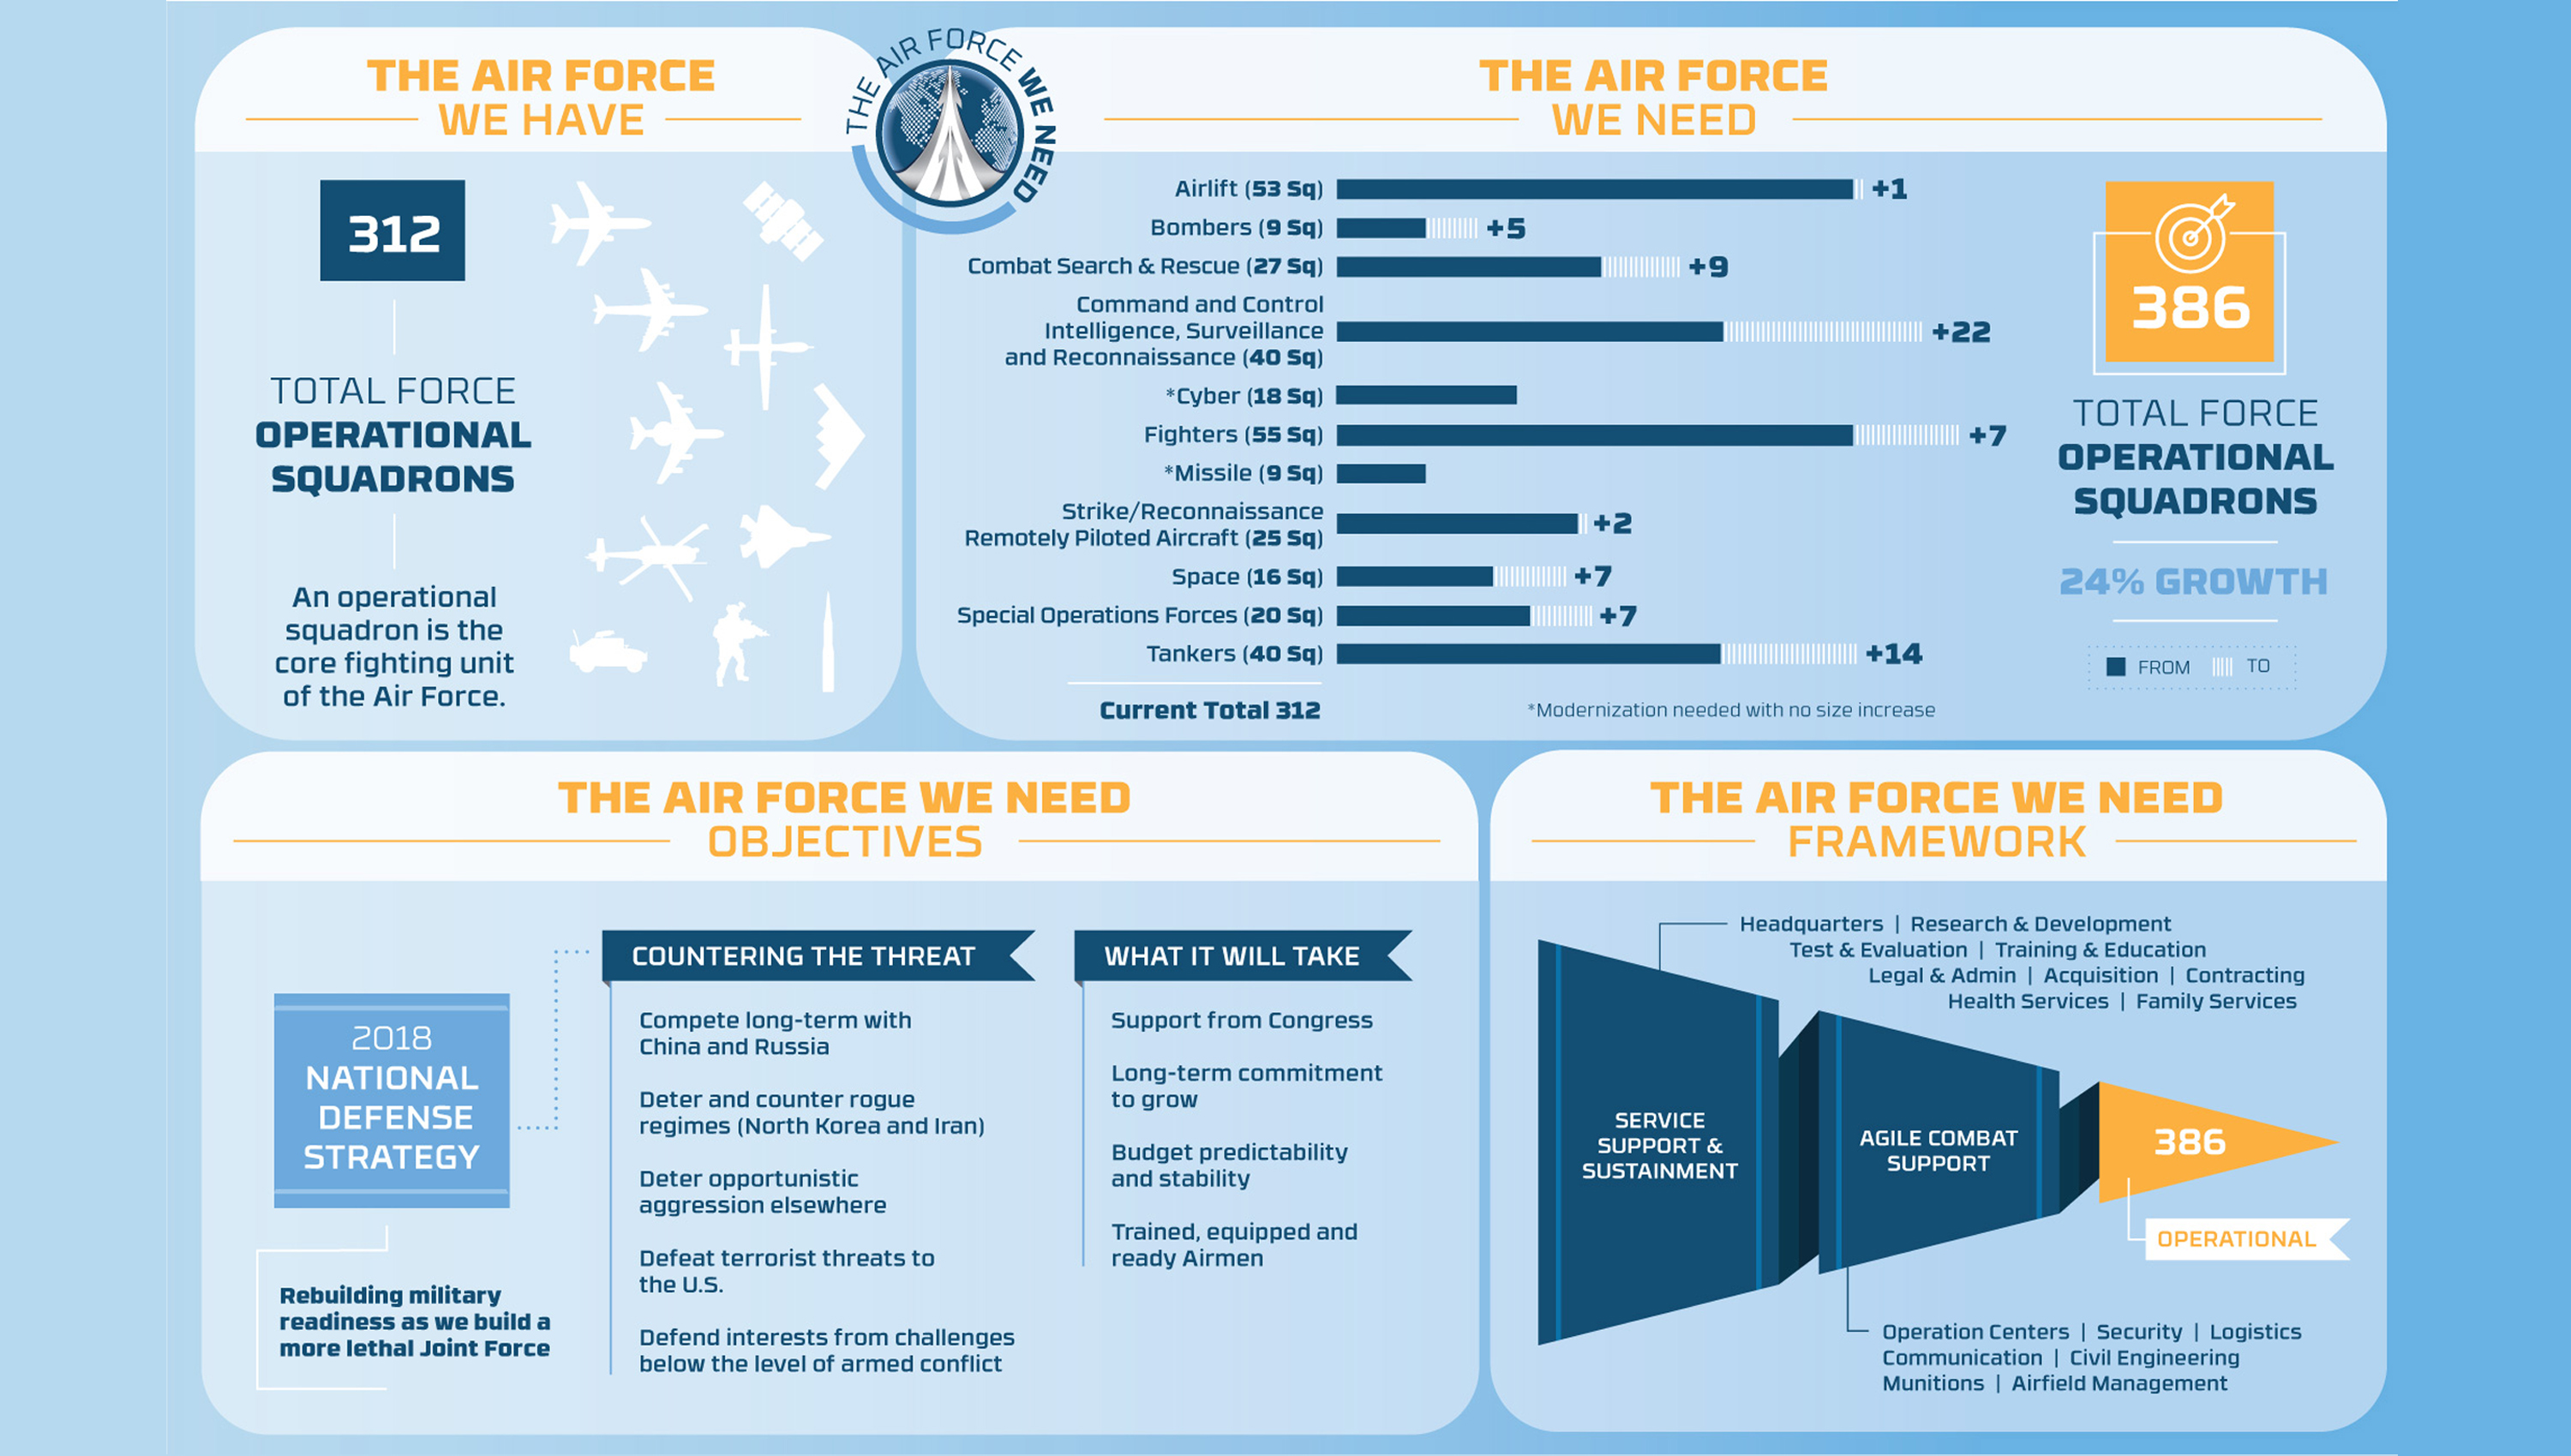 The Air Force We Need: 386 operational squadrons > Wright